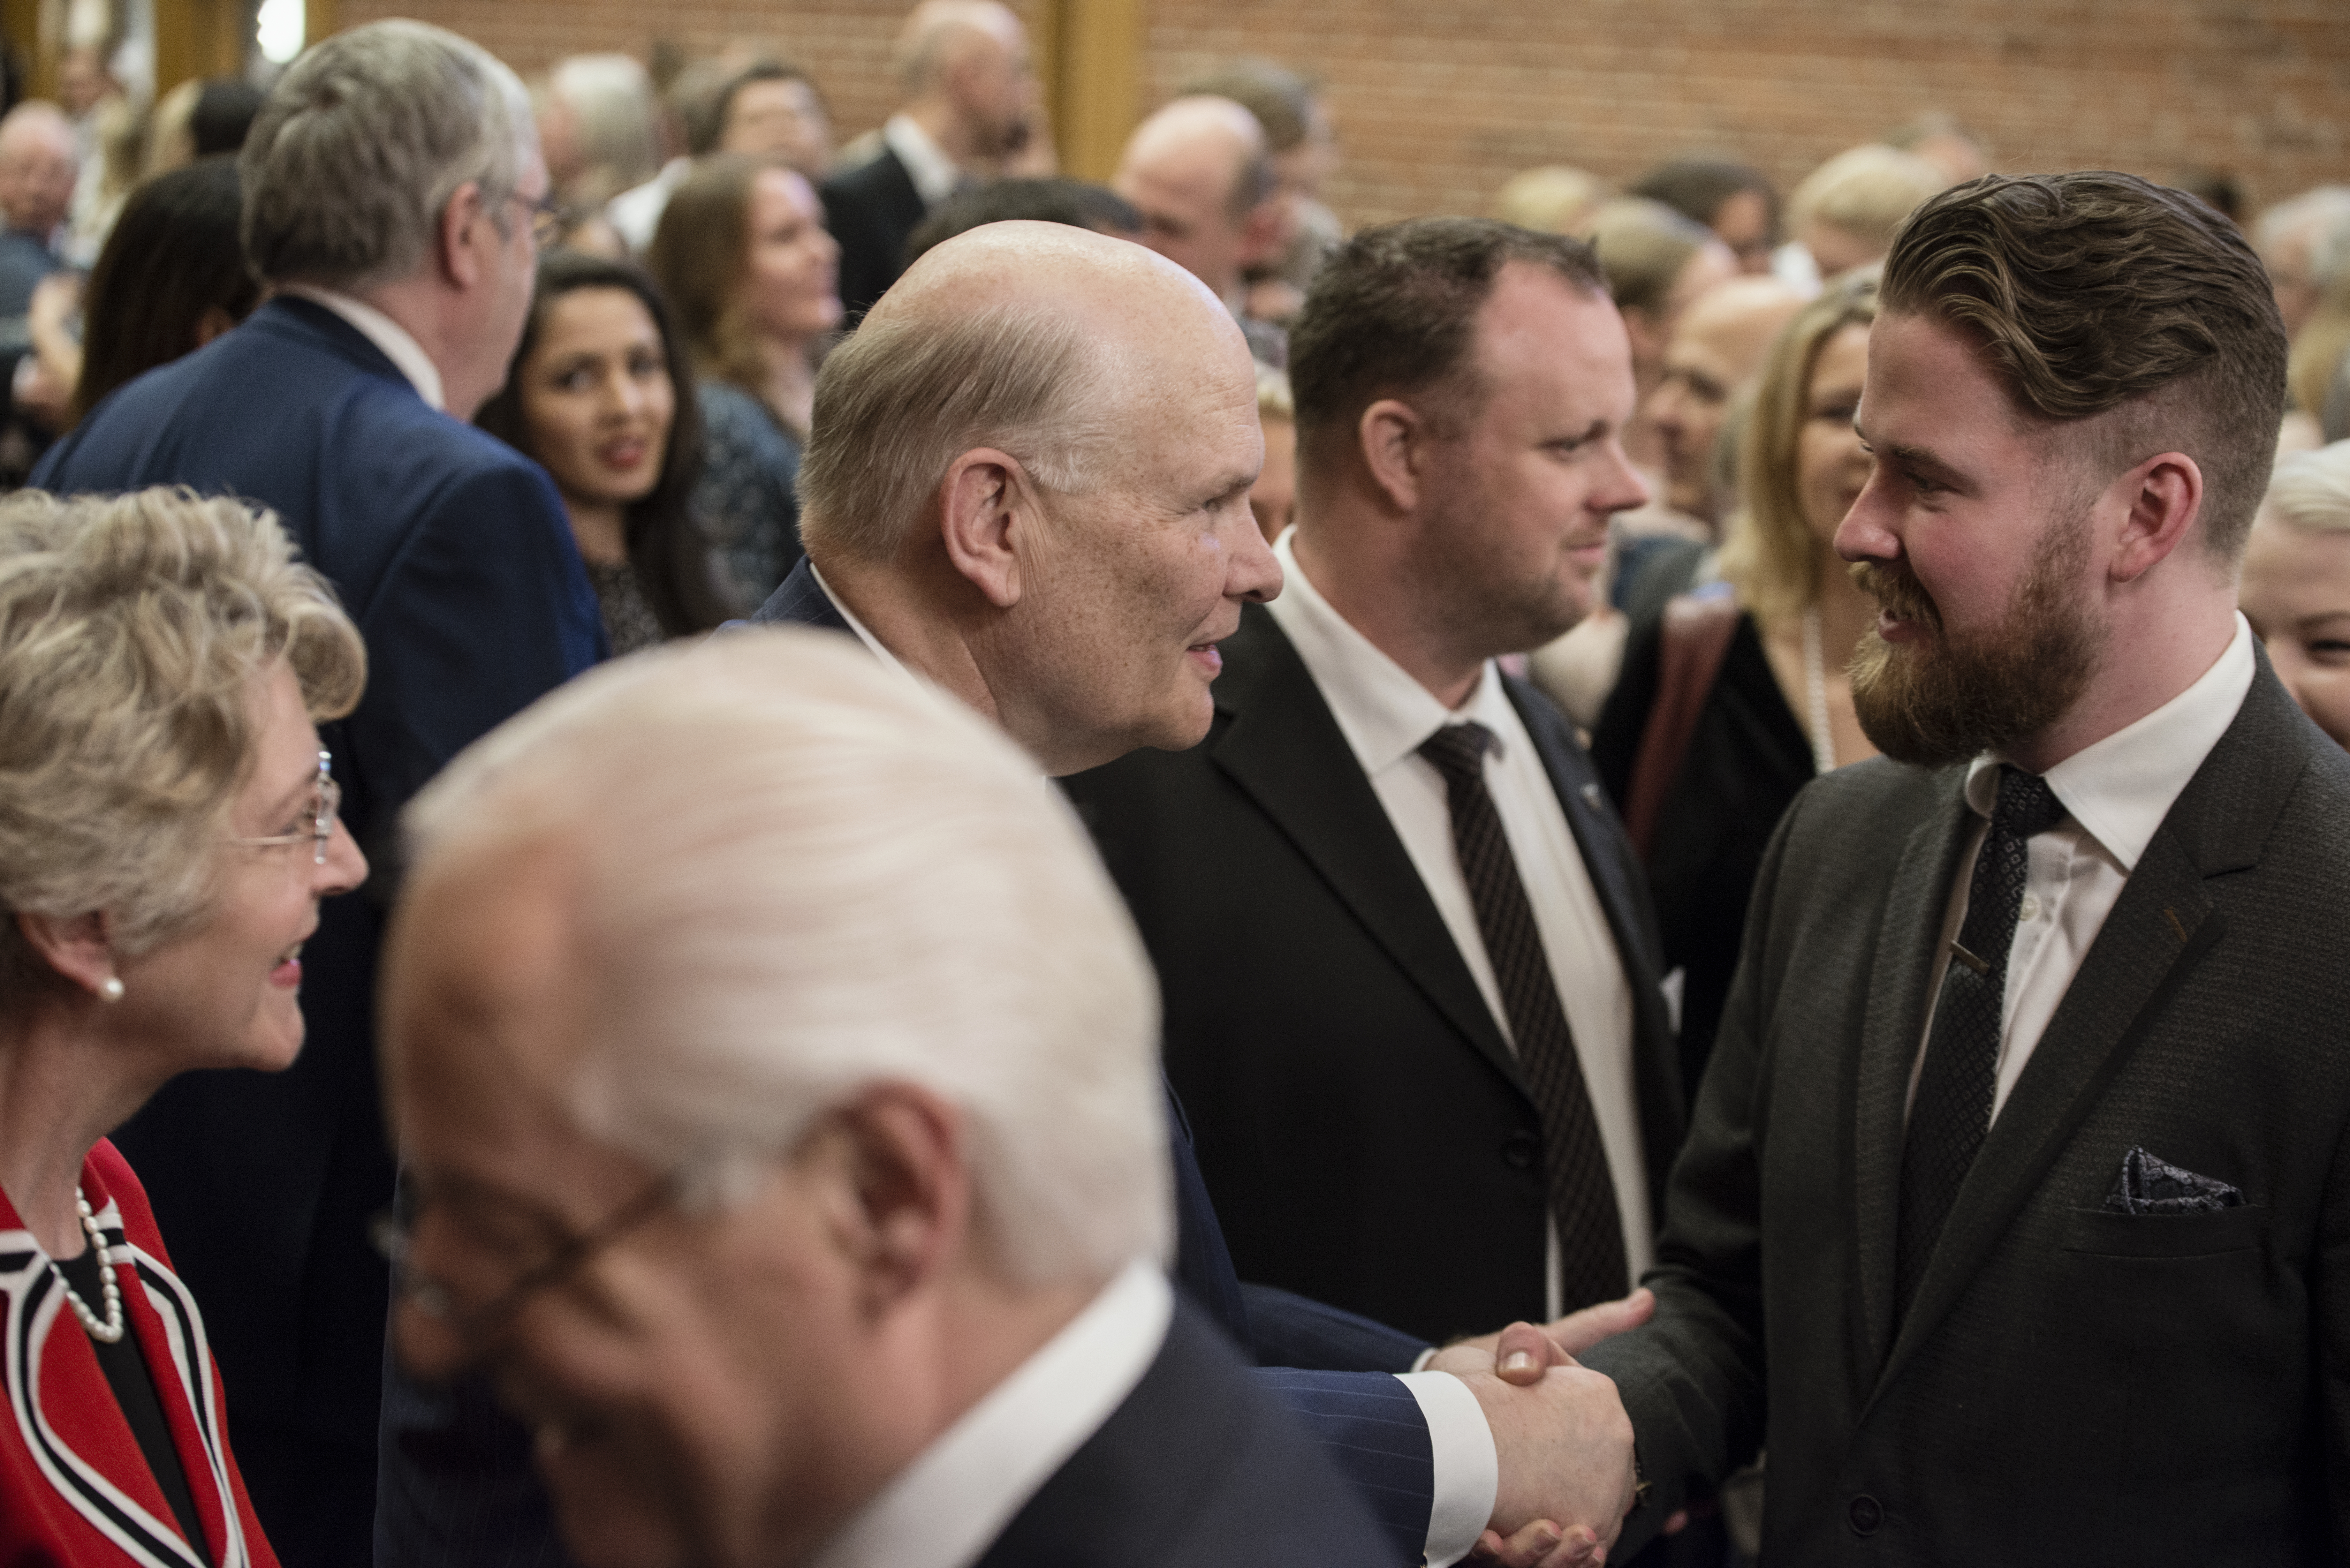 Elder Dale G. Renlund of the Quorum of the Twelve Apostles and his wife, Sister Ruth L. Renlund, visit with Church members in Sweden during a visit to the country on April 29.